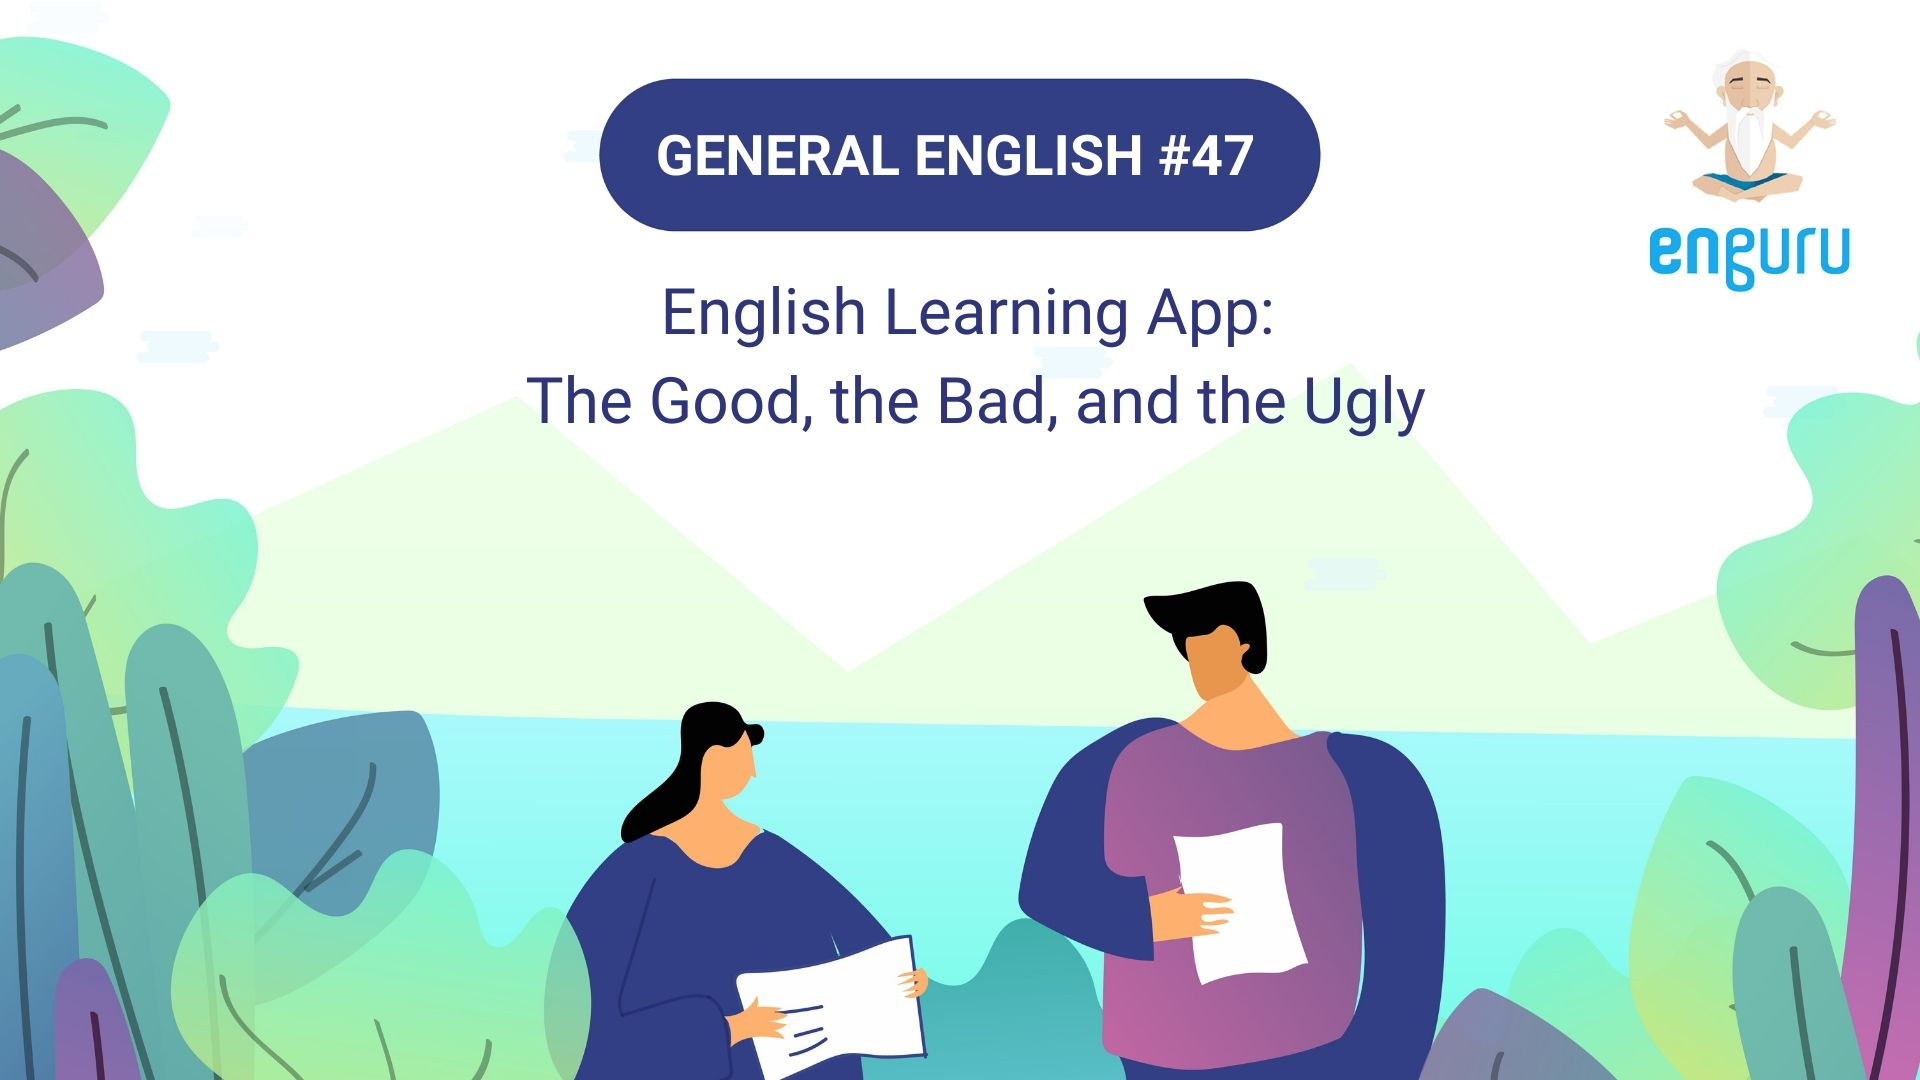 English learning app benefits